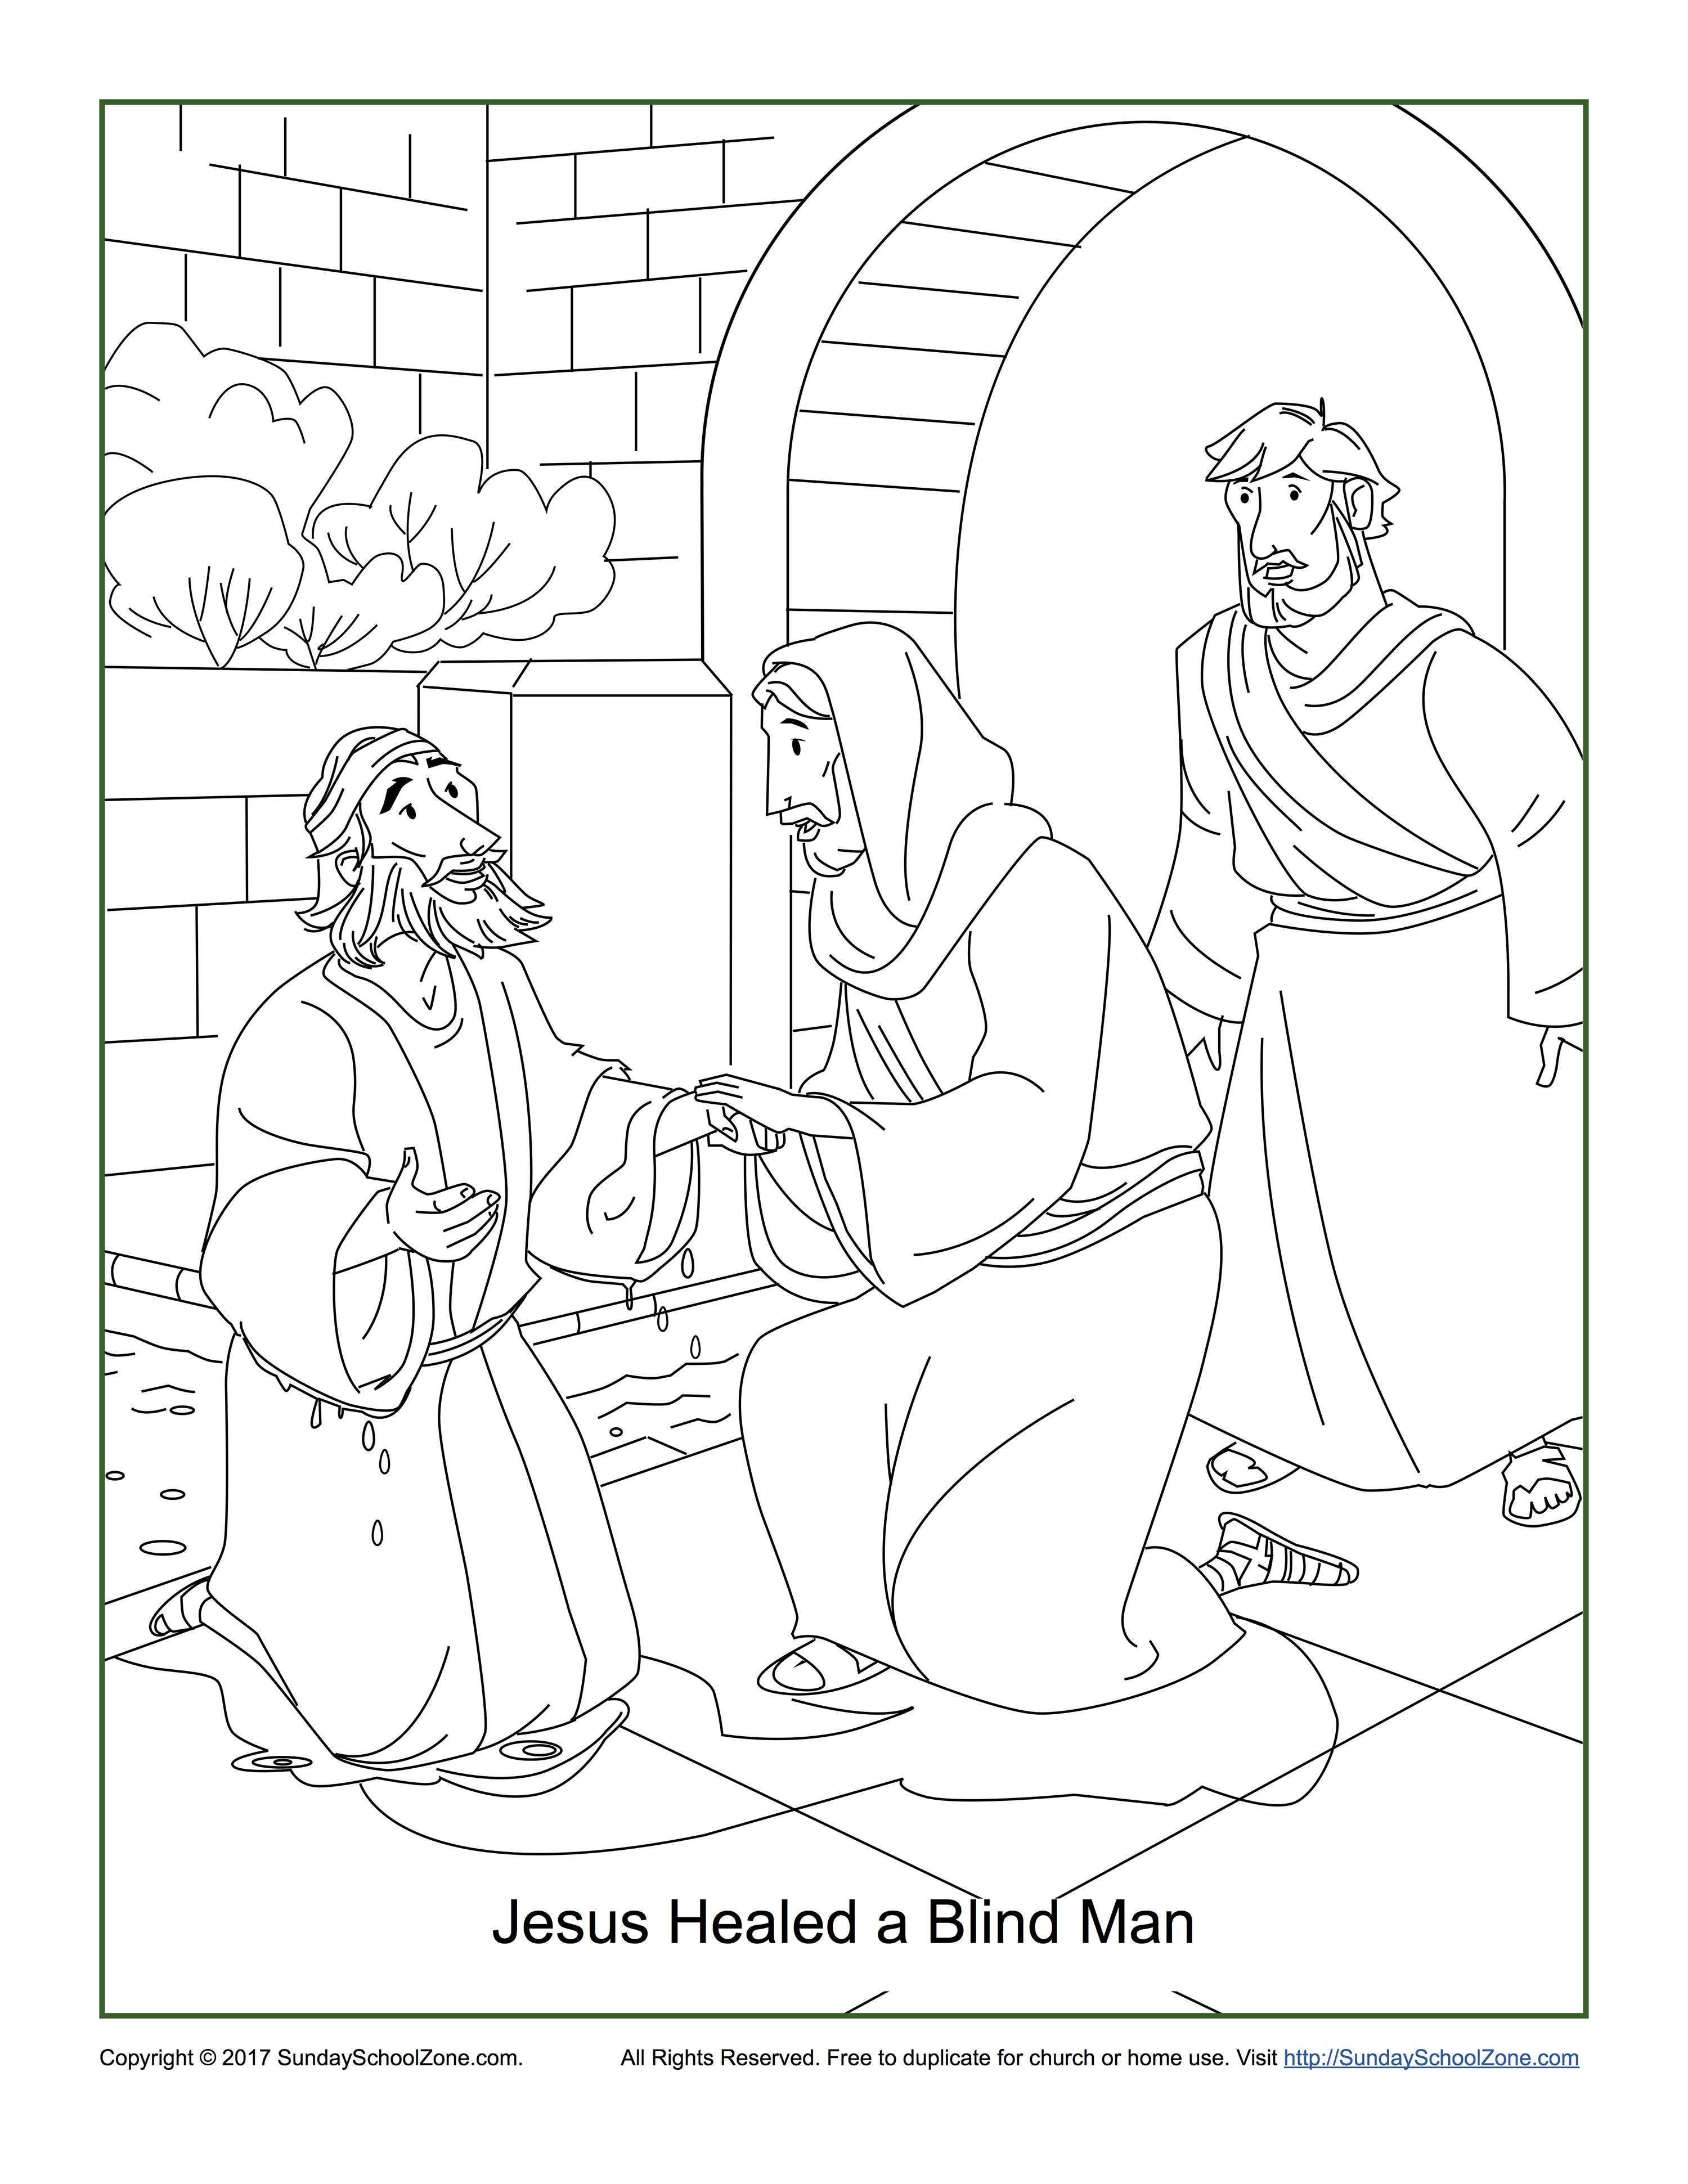 Free clipart images blind man of john 9 picture library download Jesus Healed a Blind Man Coloring Page John 9:1-7 | Jesus Healed a ... picture library download